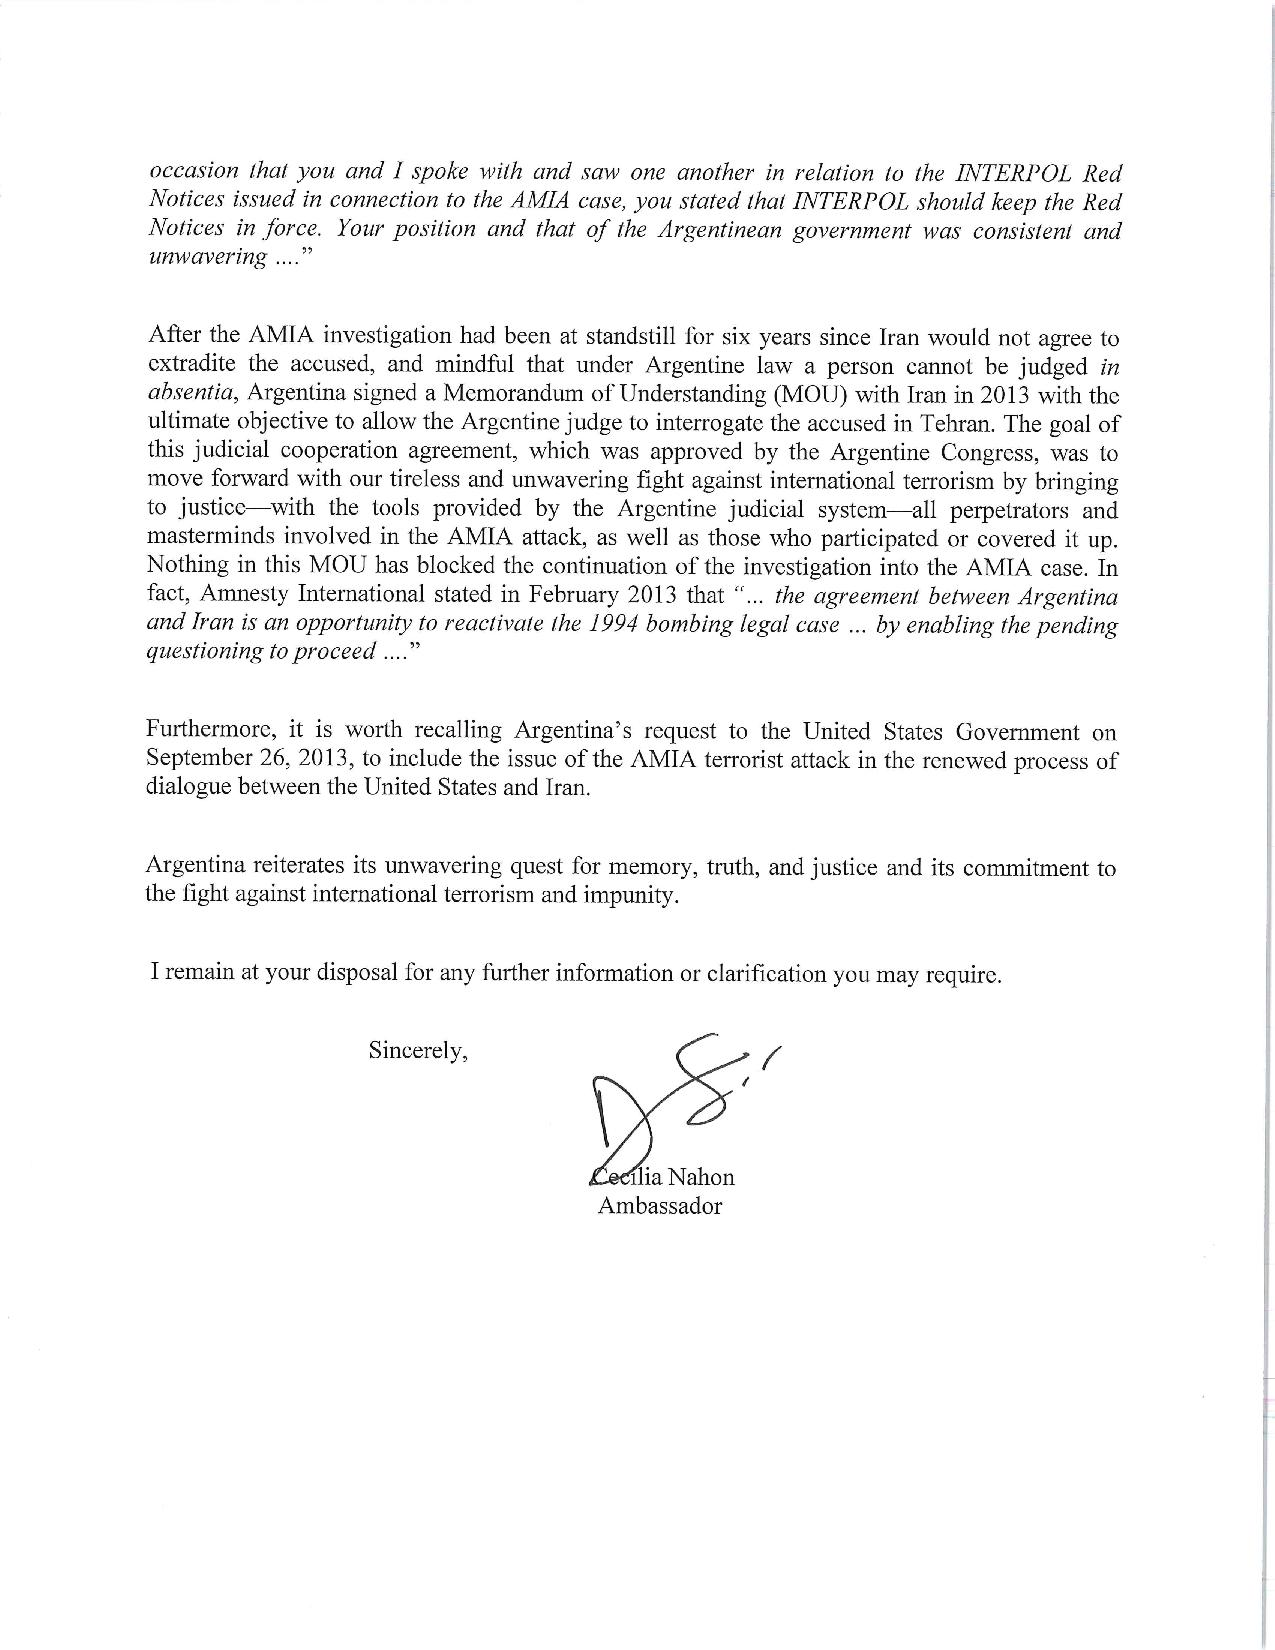 Letter_from_Argentine_Ambassador__H.E._Cecilia_Nahon__regarding_the_AMIA_case_and_the_death_of_Argentine_General_Prosecutor_Alberto_Nisman-page-002